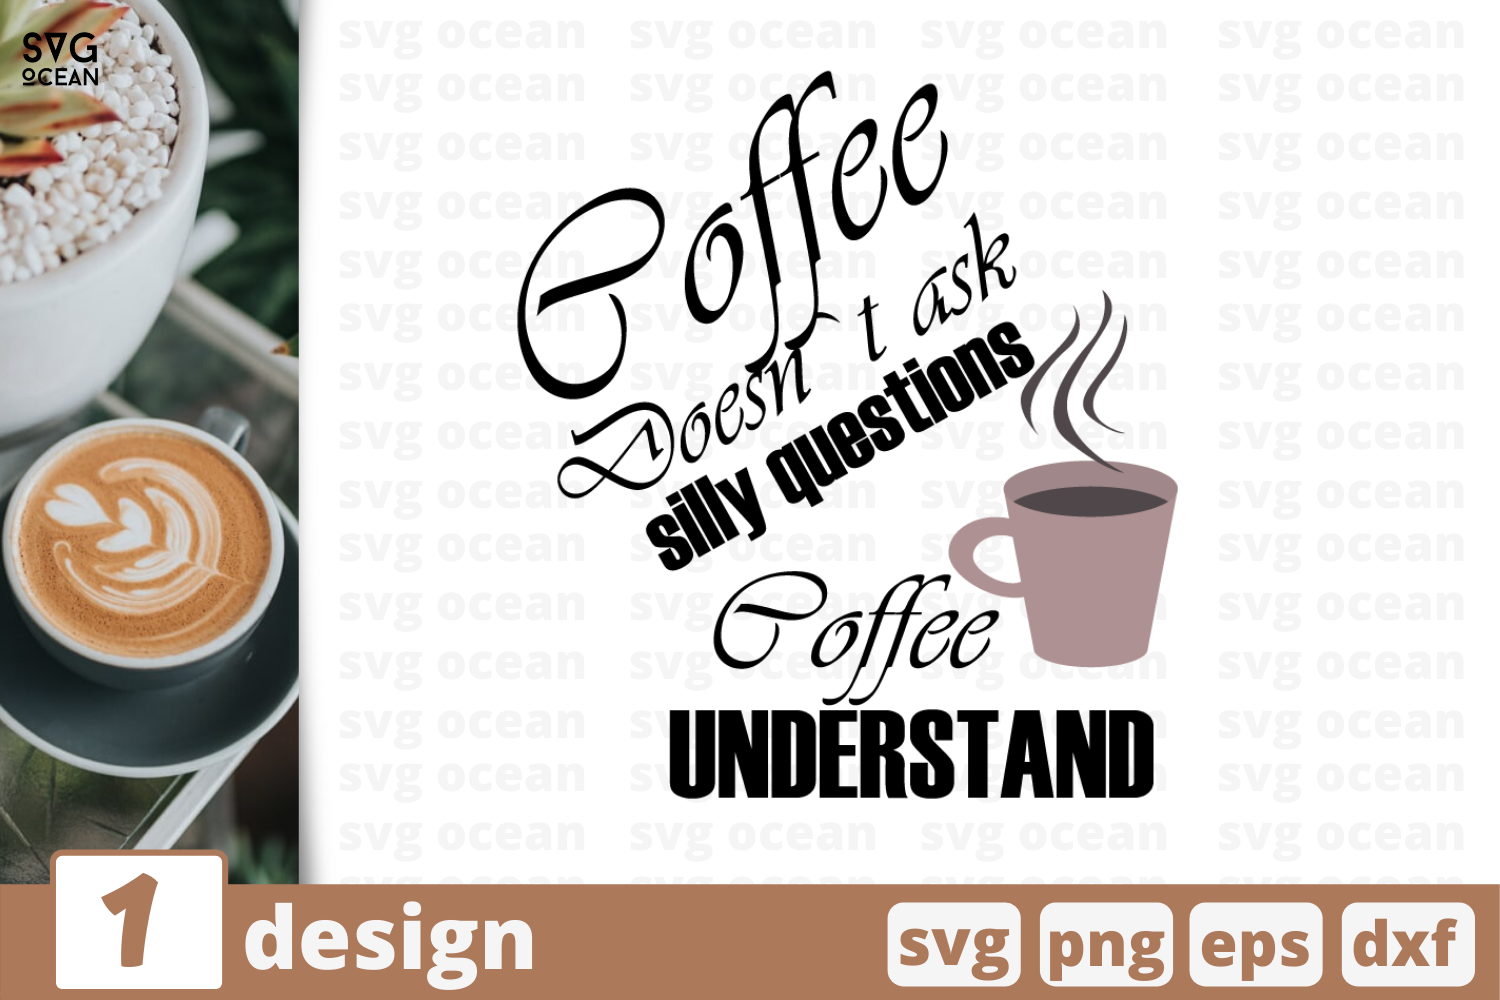 1 Coffee Understand Svg Bundle Quotes Cricut Svg By Svgocean